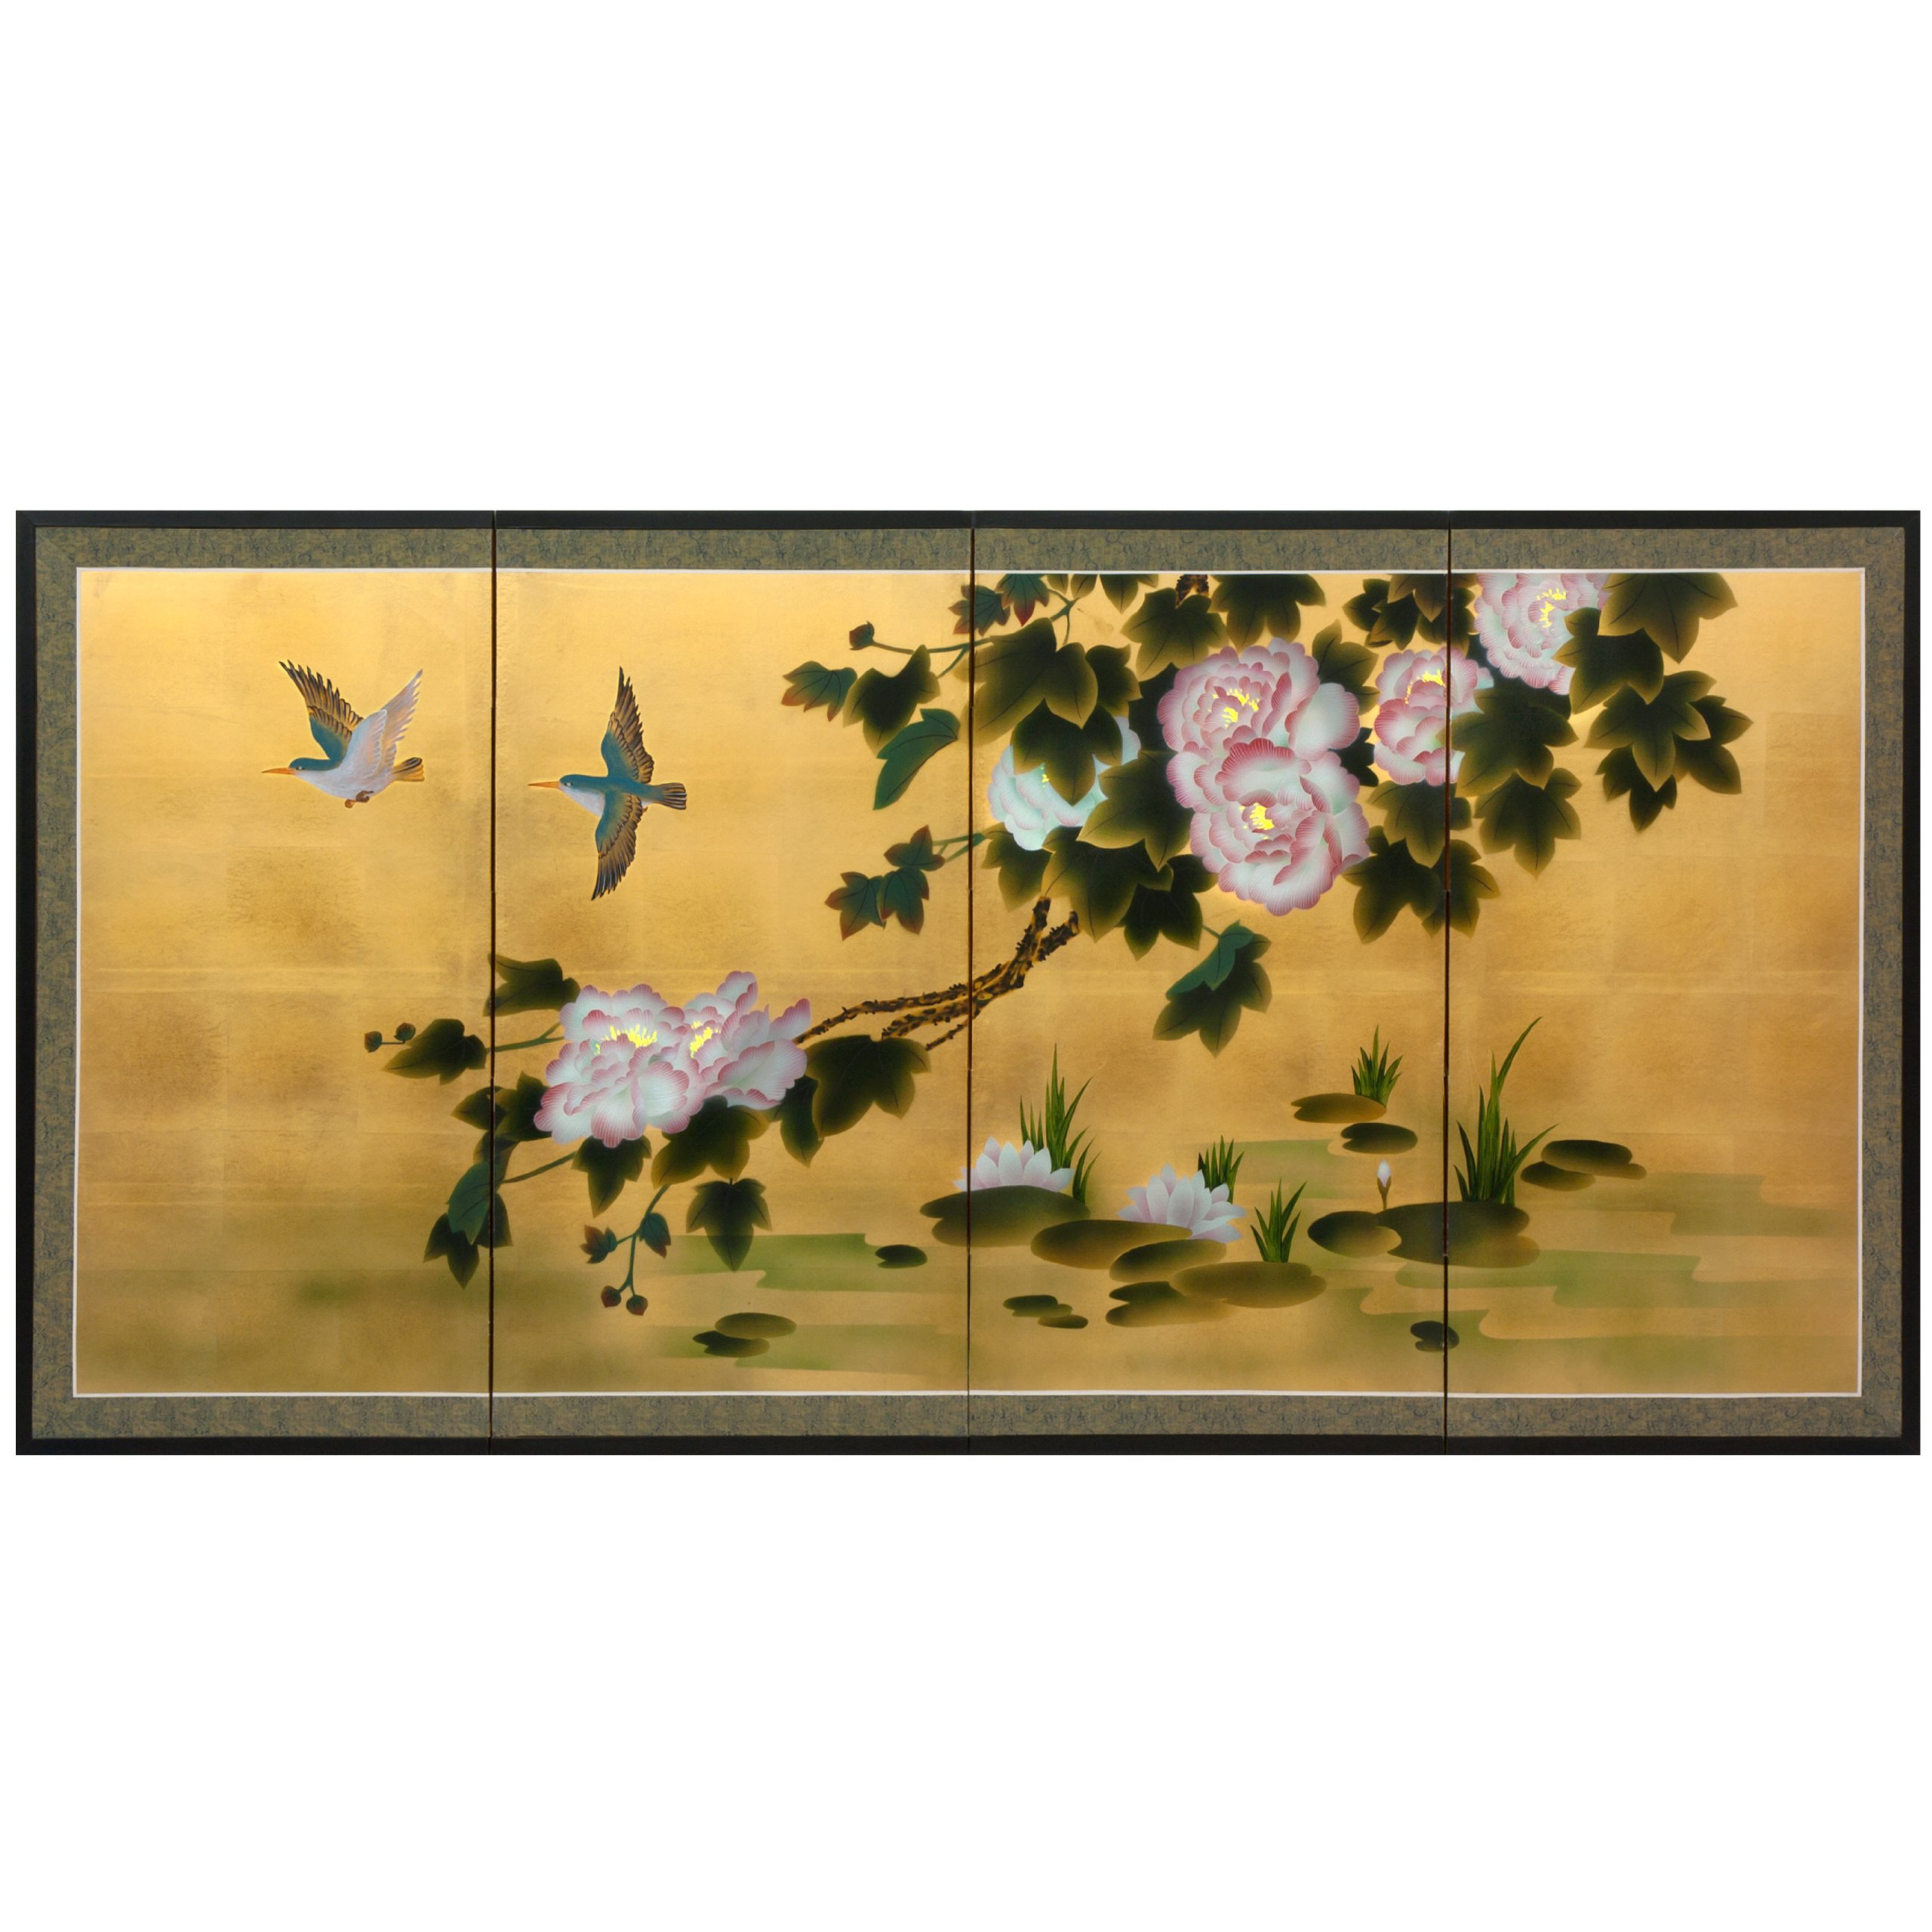 ORIENTAL Furniture 36'' Lilly Pad Pond on Gold Leaf,